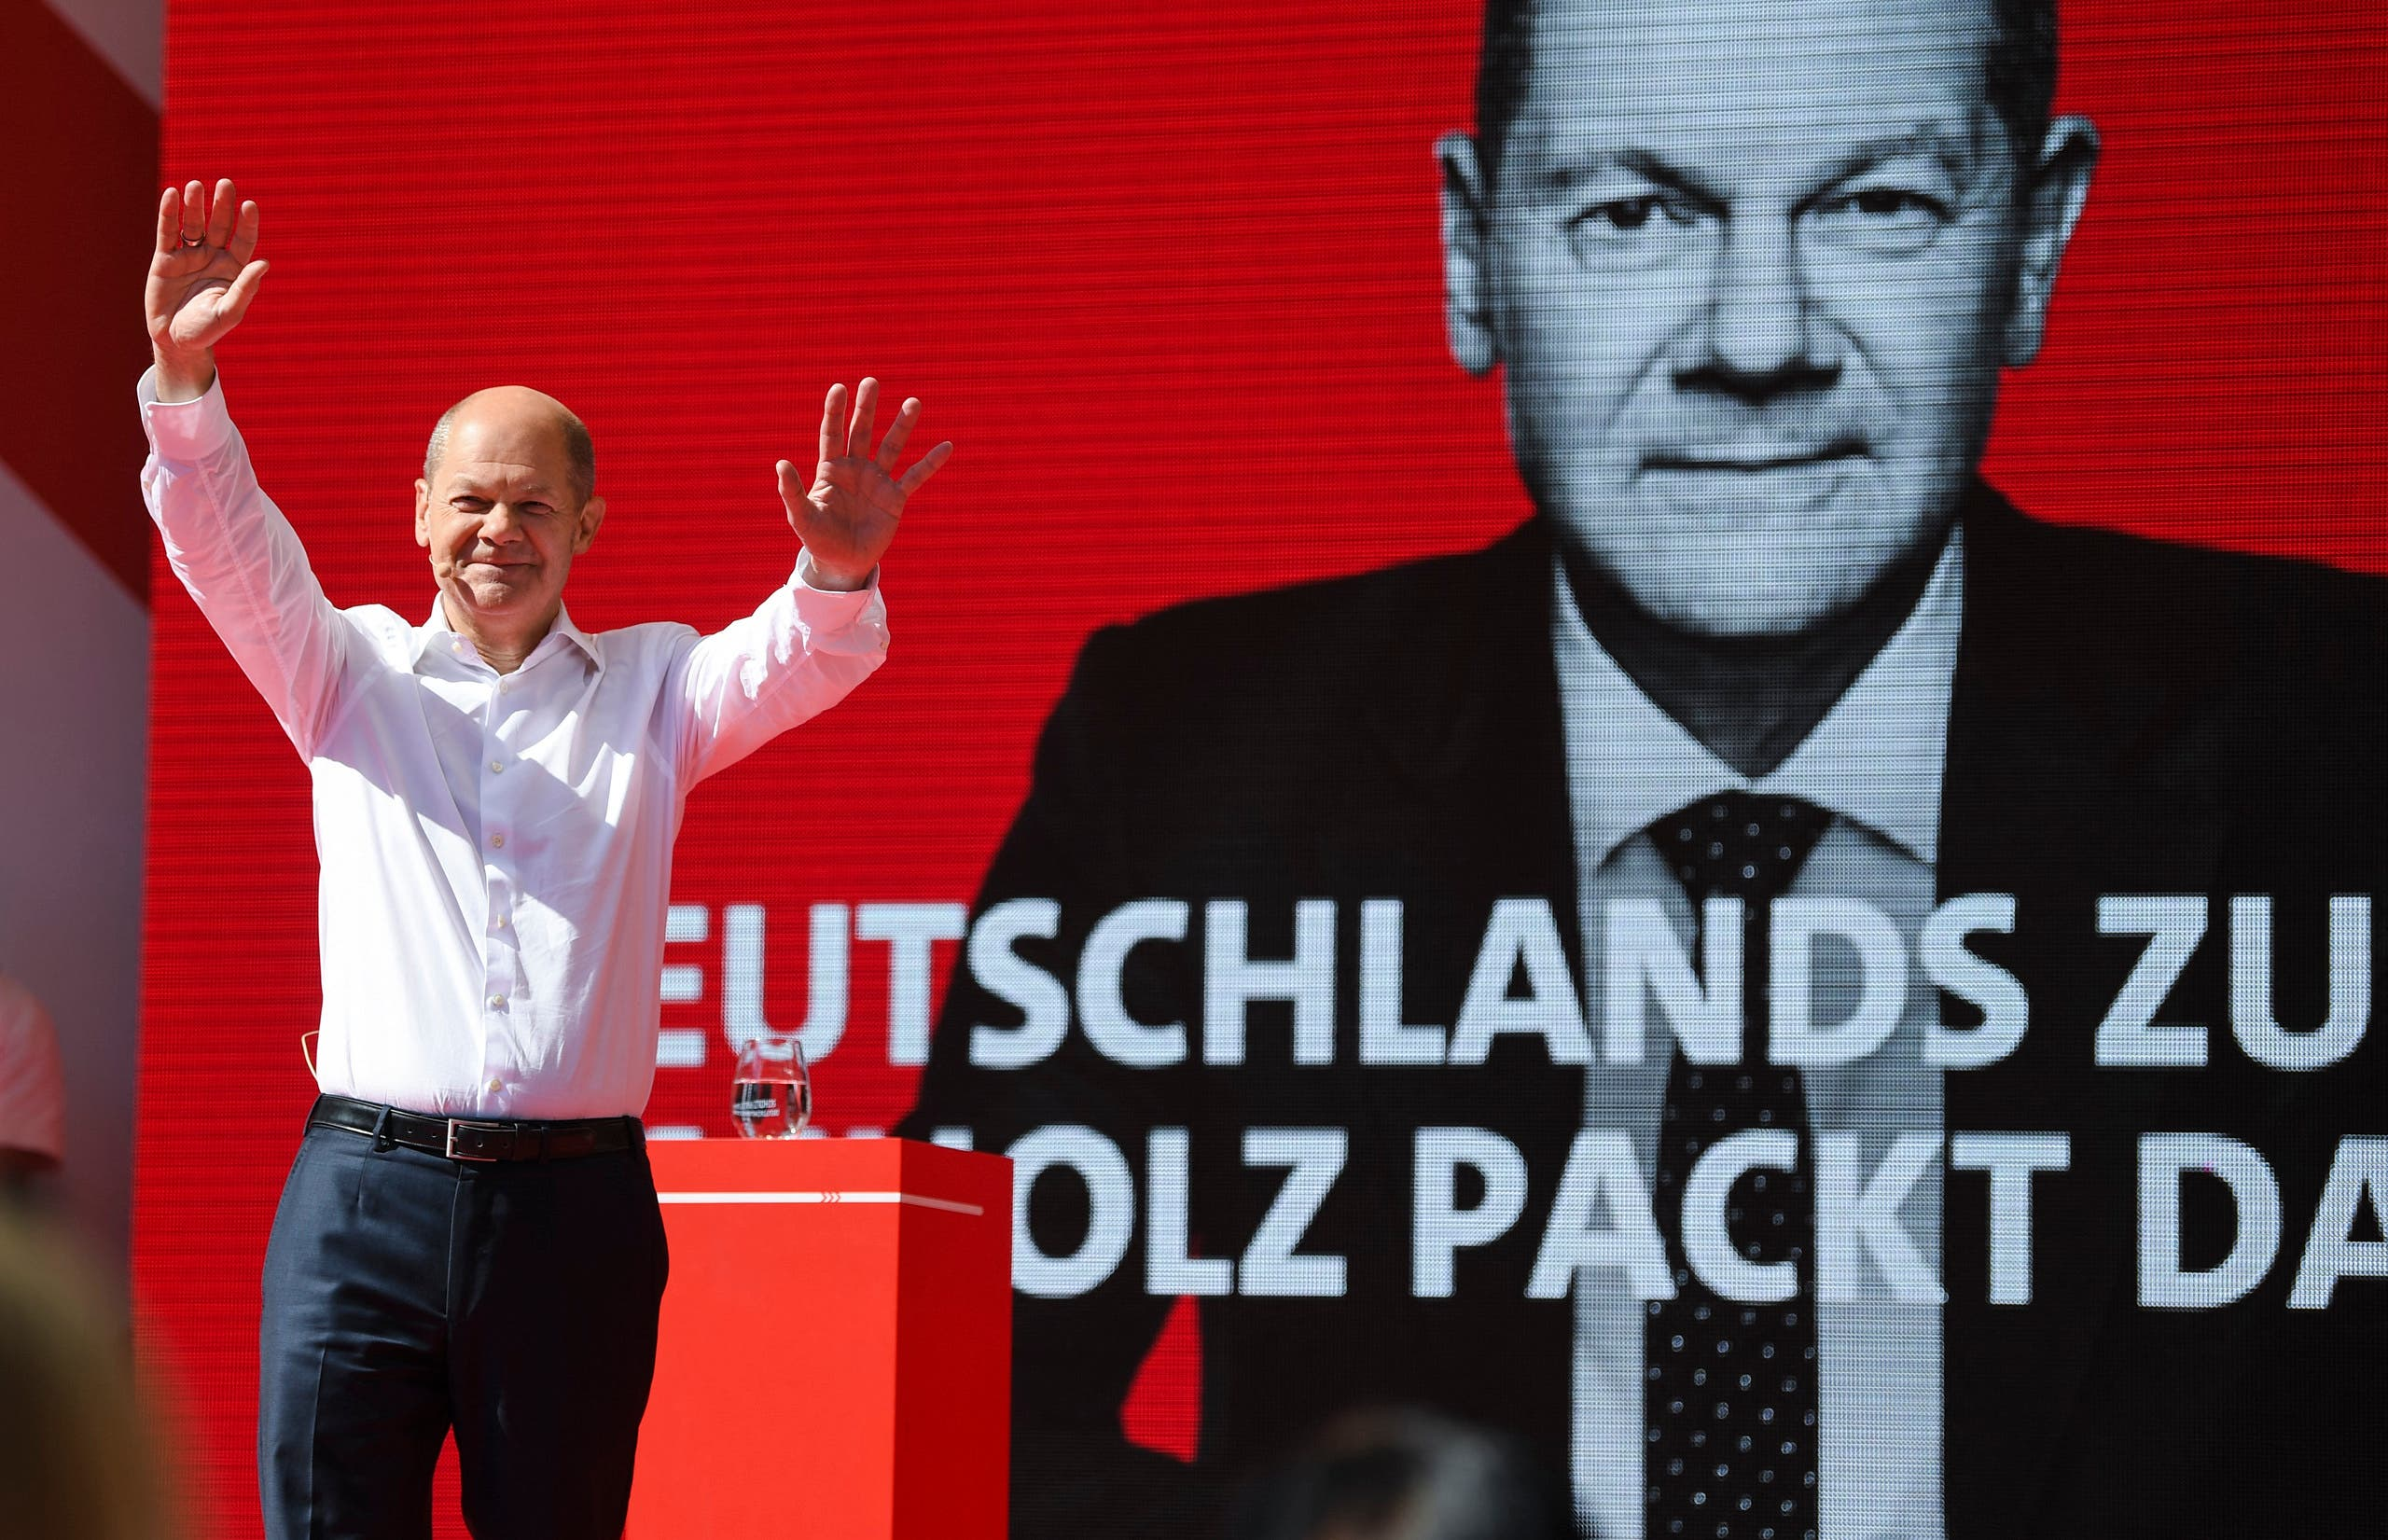 German Finance Minister, Vice-Chancellor, and the Social Democratic Party's (SPD) chancellor candidate Olaf Scholz waves to supporters during a rally in Munich, southern Germany, on September 18, 2021. (AFP)